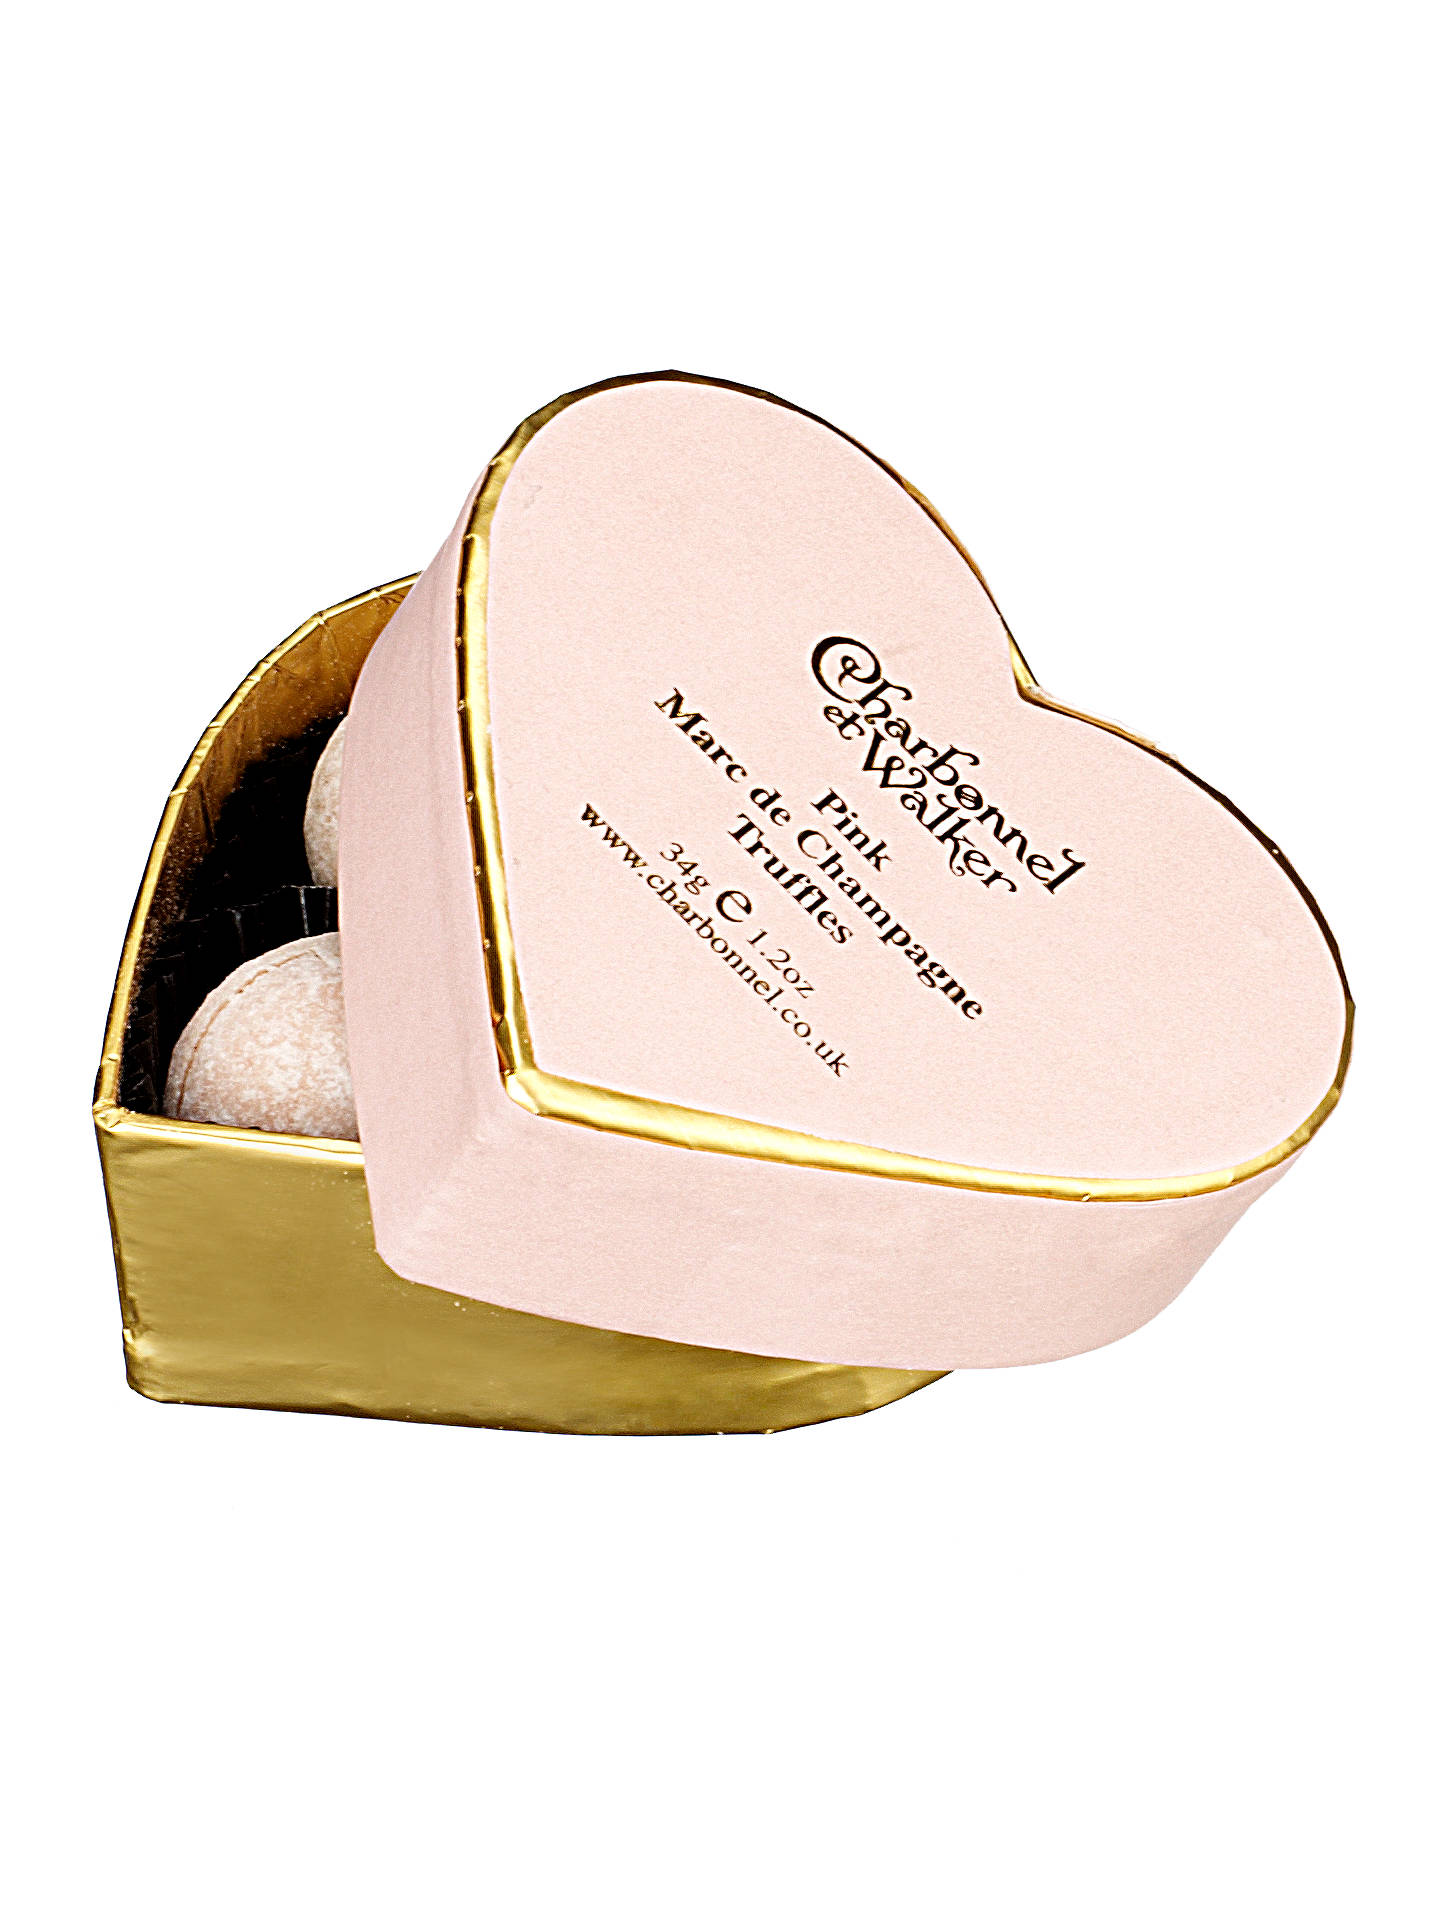 BuyCharbonnel et Walker Mini Pink Heart Champagne Truffles, 34g Online at johnlewis.com